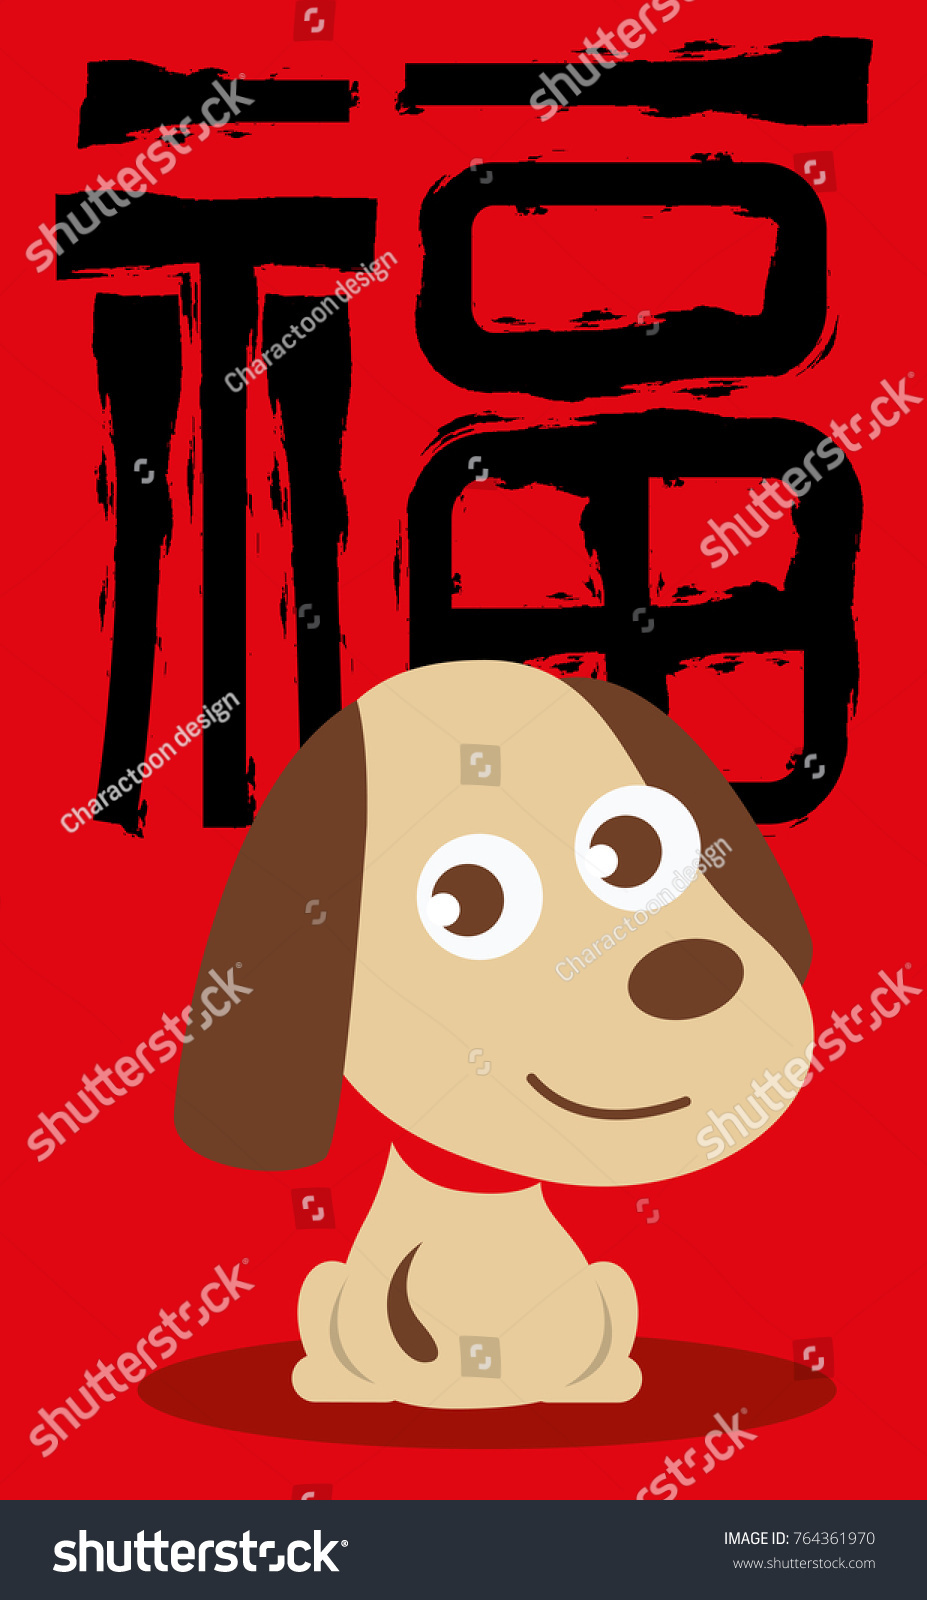 Chinese new year 2018 greeting card stock vector 764361970 chinese new year 2018 greeting card design with cute dog the year of dog 2018 kristyandbryce Gallery